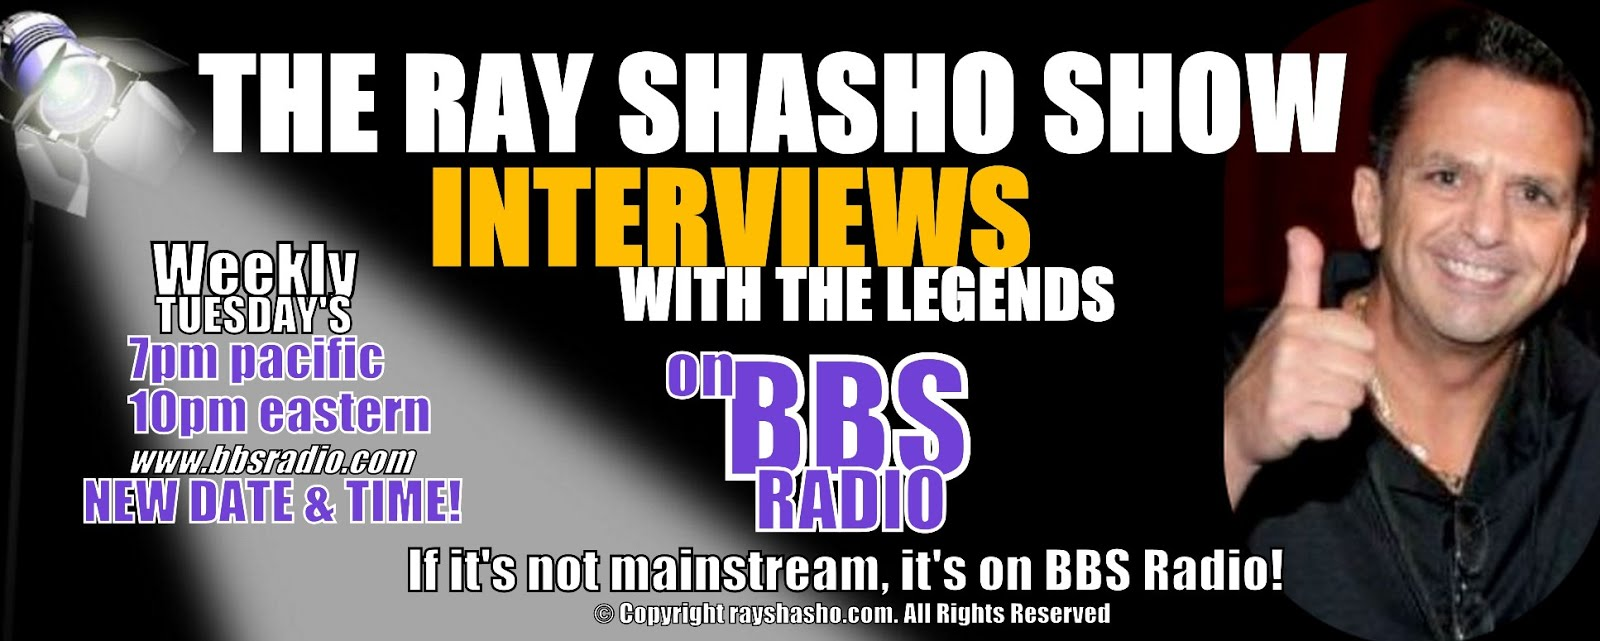 THE RAY SHASHO SHOW